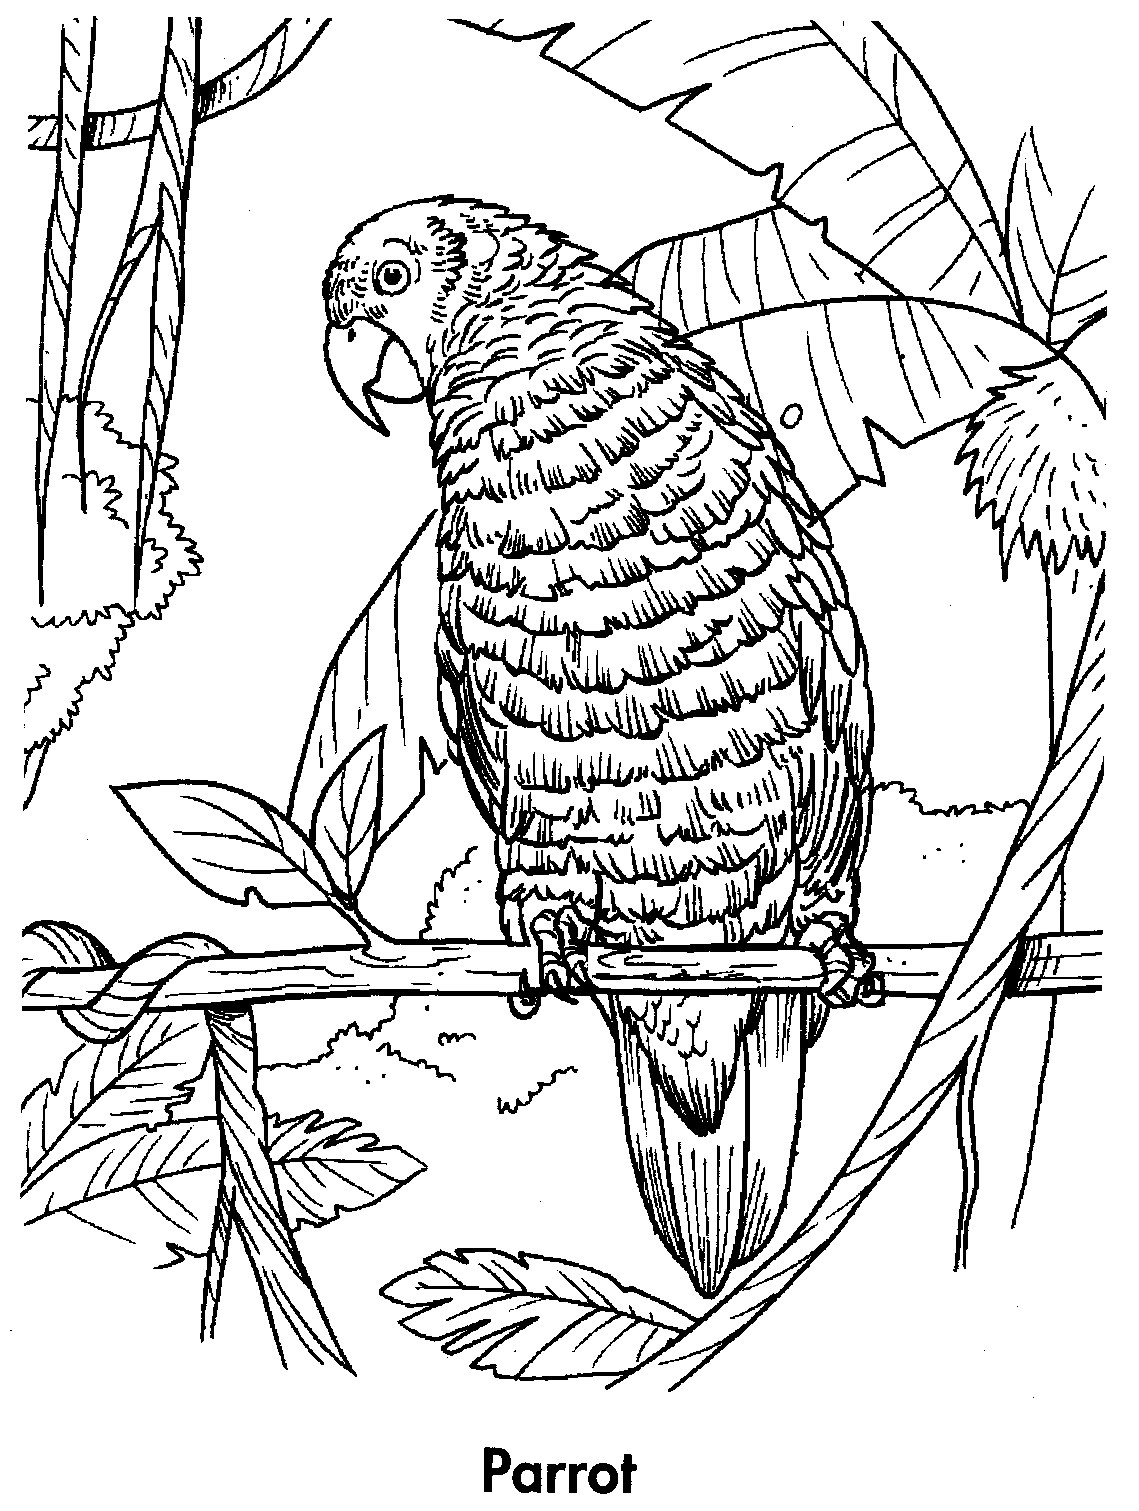 sport life planet earth coloring book awesome animals 95